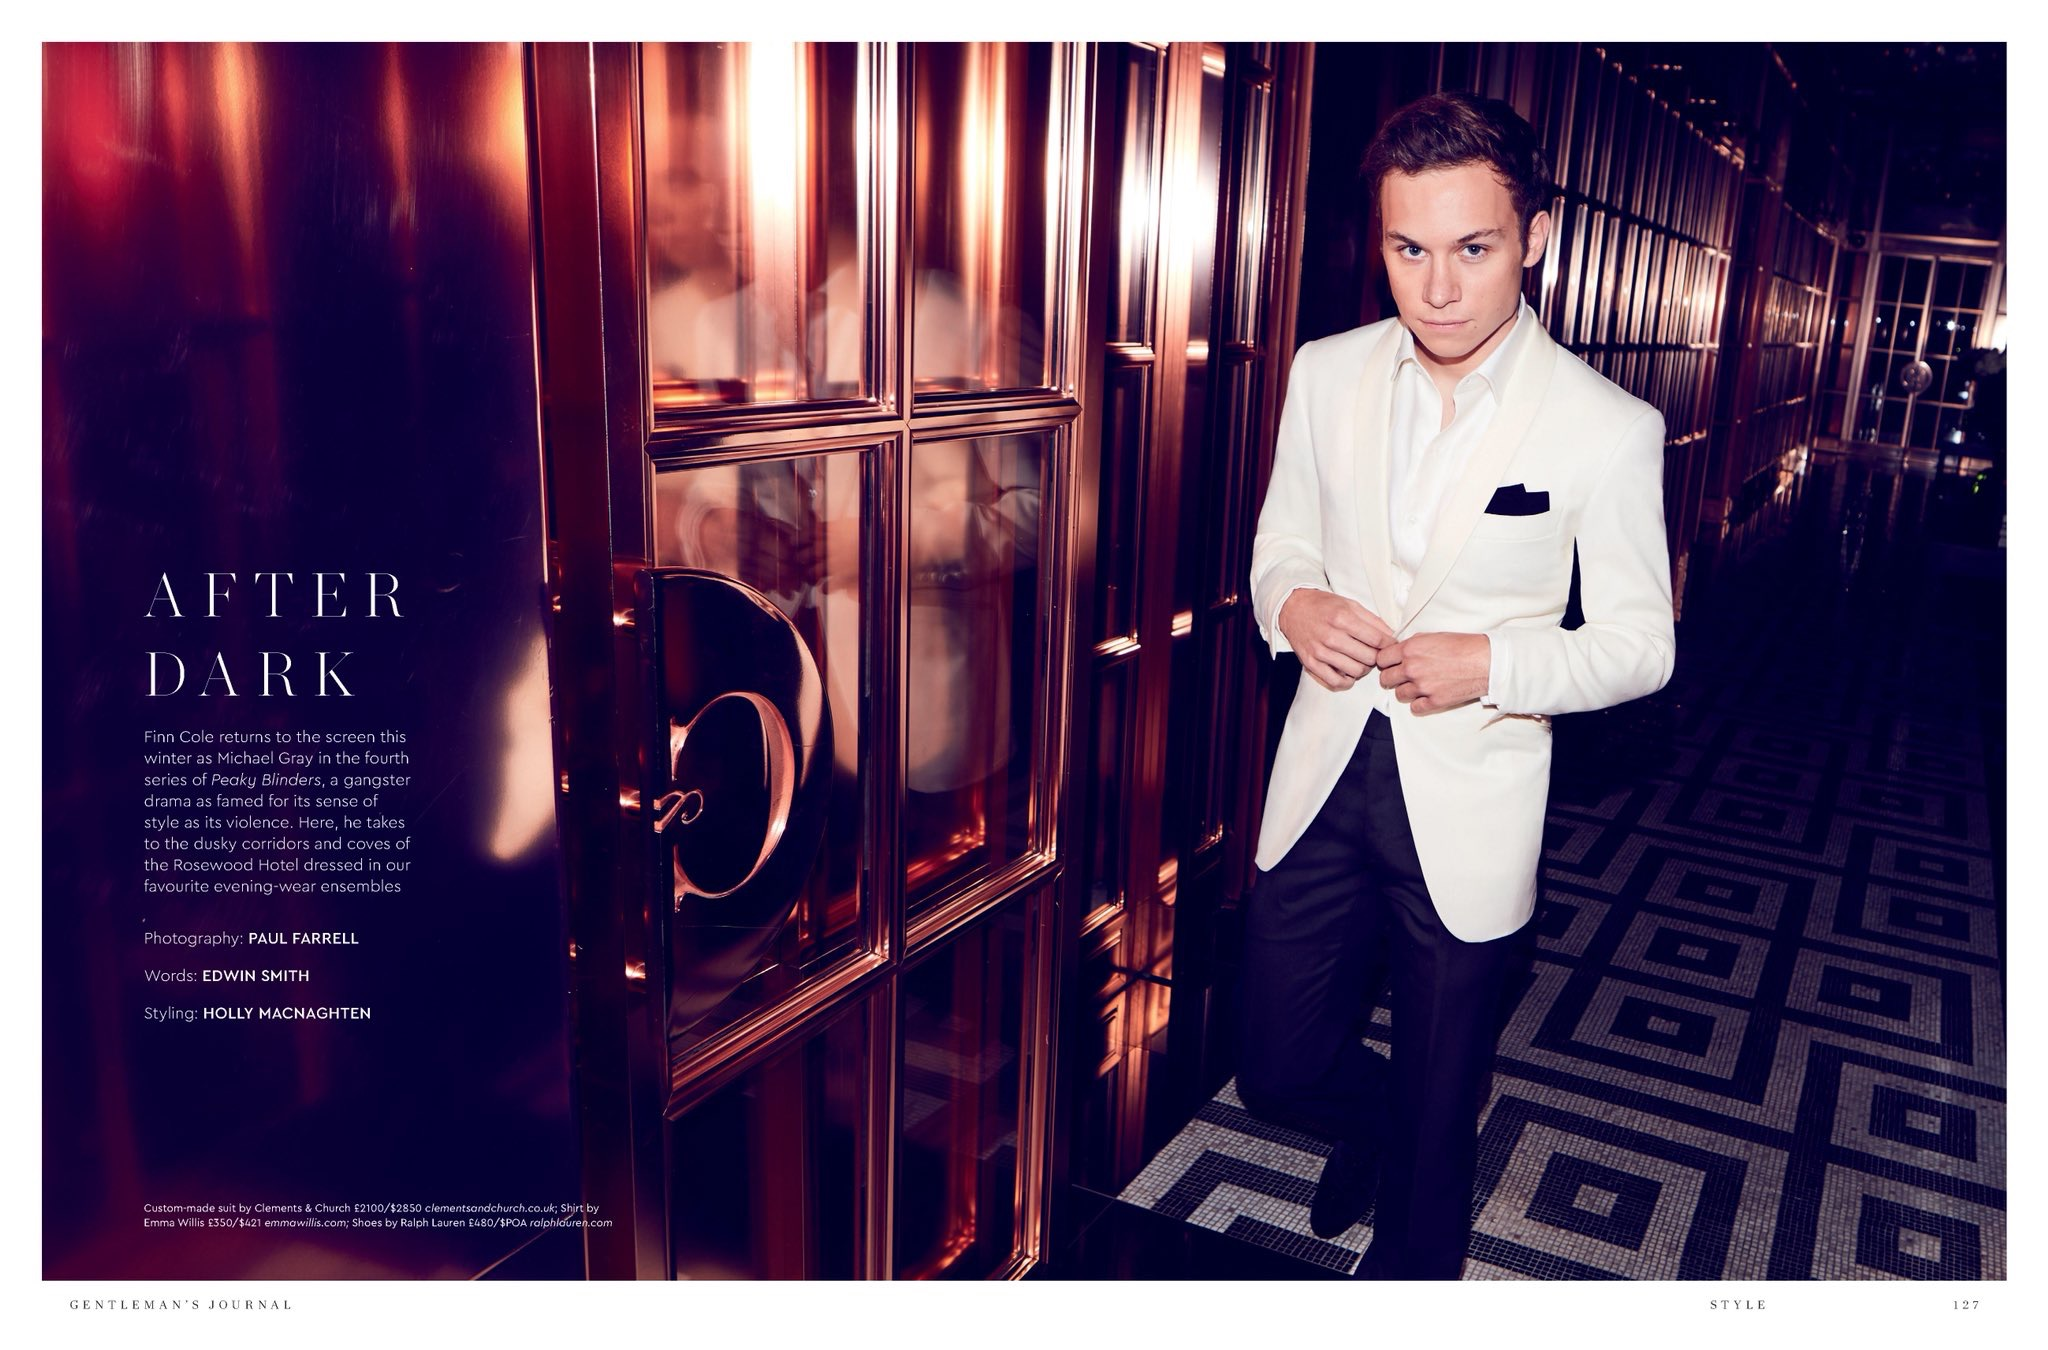 Finn Cole on squaring up to Tom Hardy, and the new Peaky Blinders - Gentleman's Journal